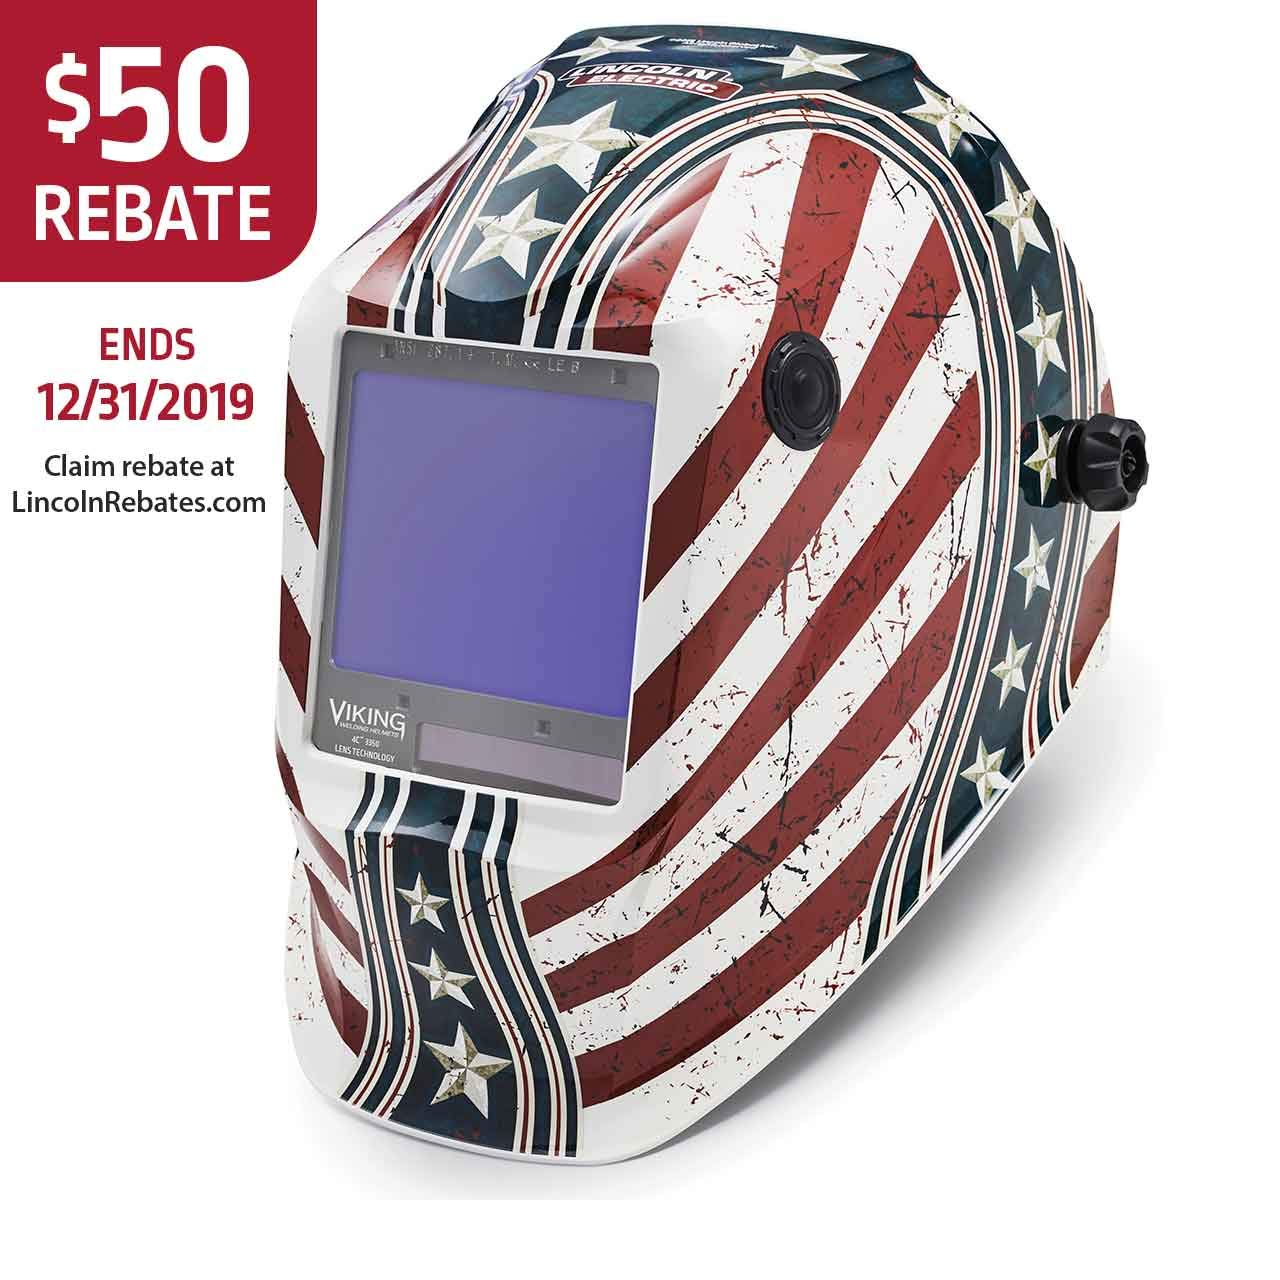 Lincoln Electric K3683-4 VIKING 3350 Welding Helmet, Daredevil by Lincoln Electric